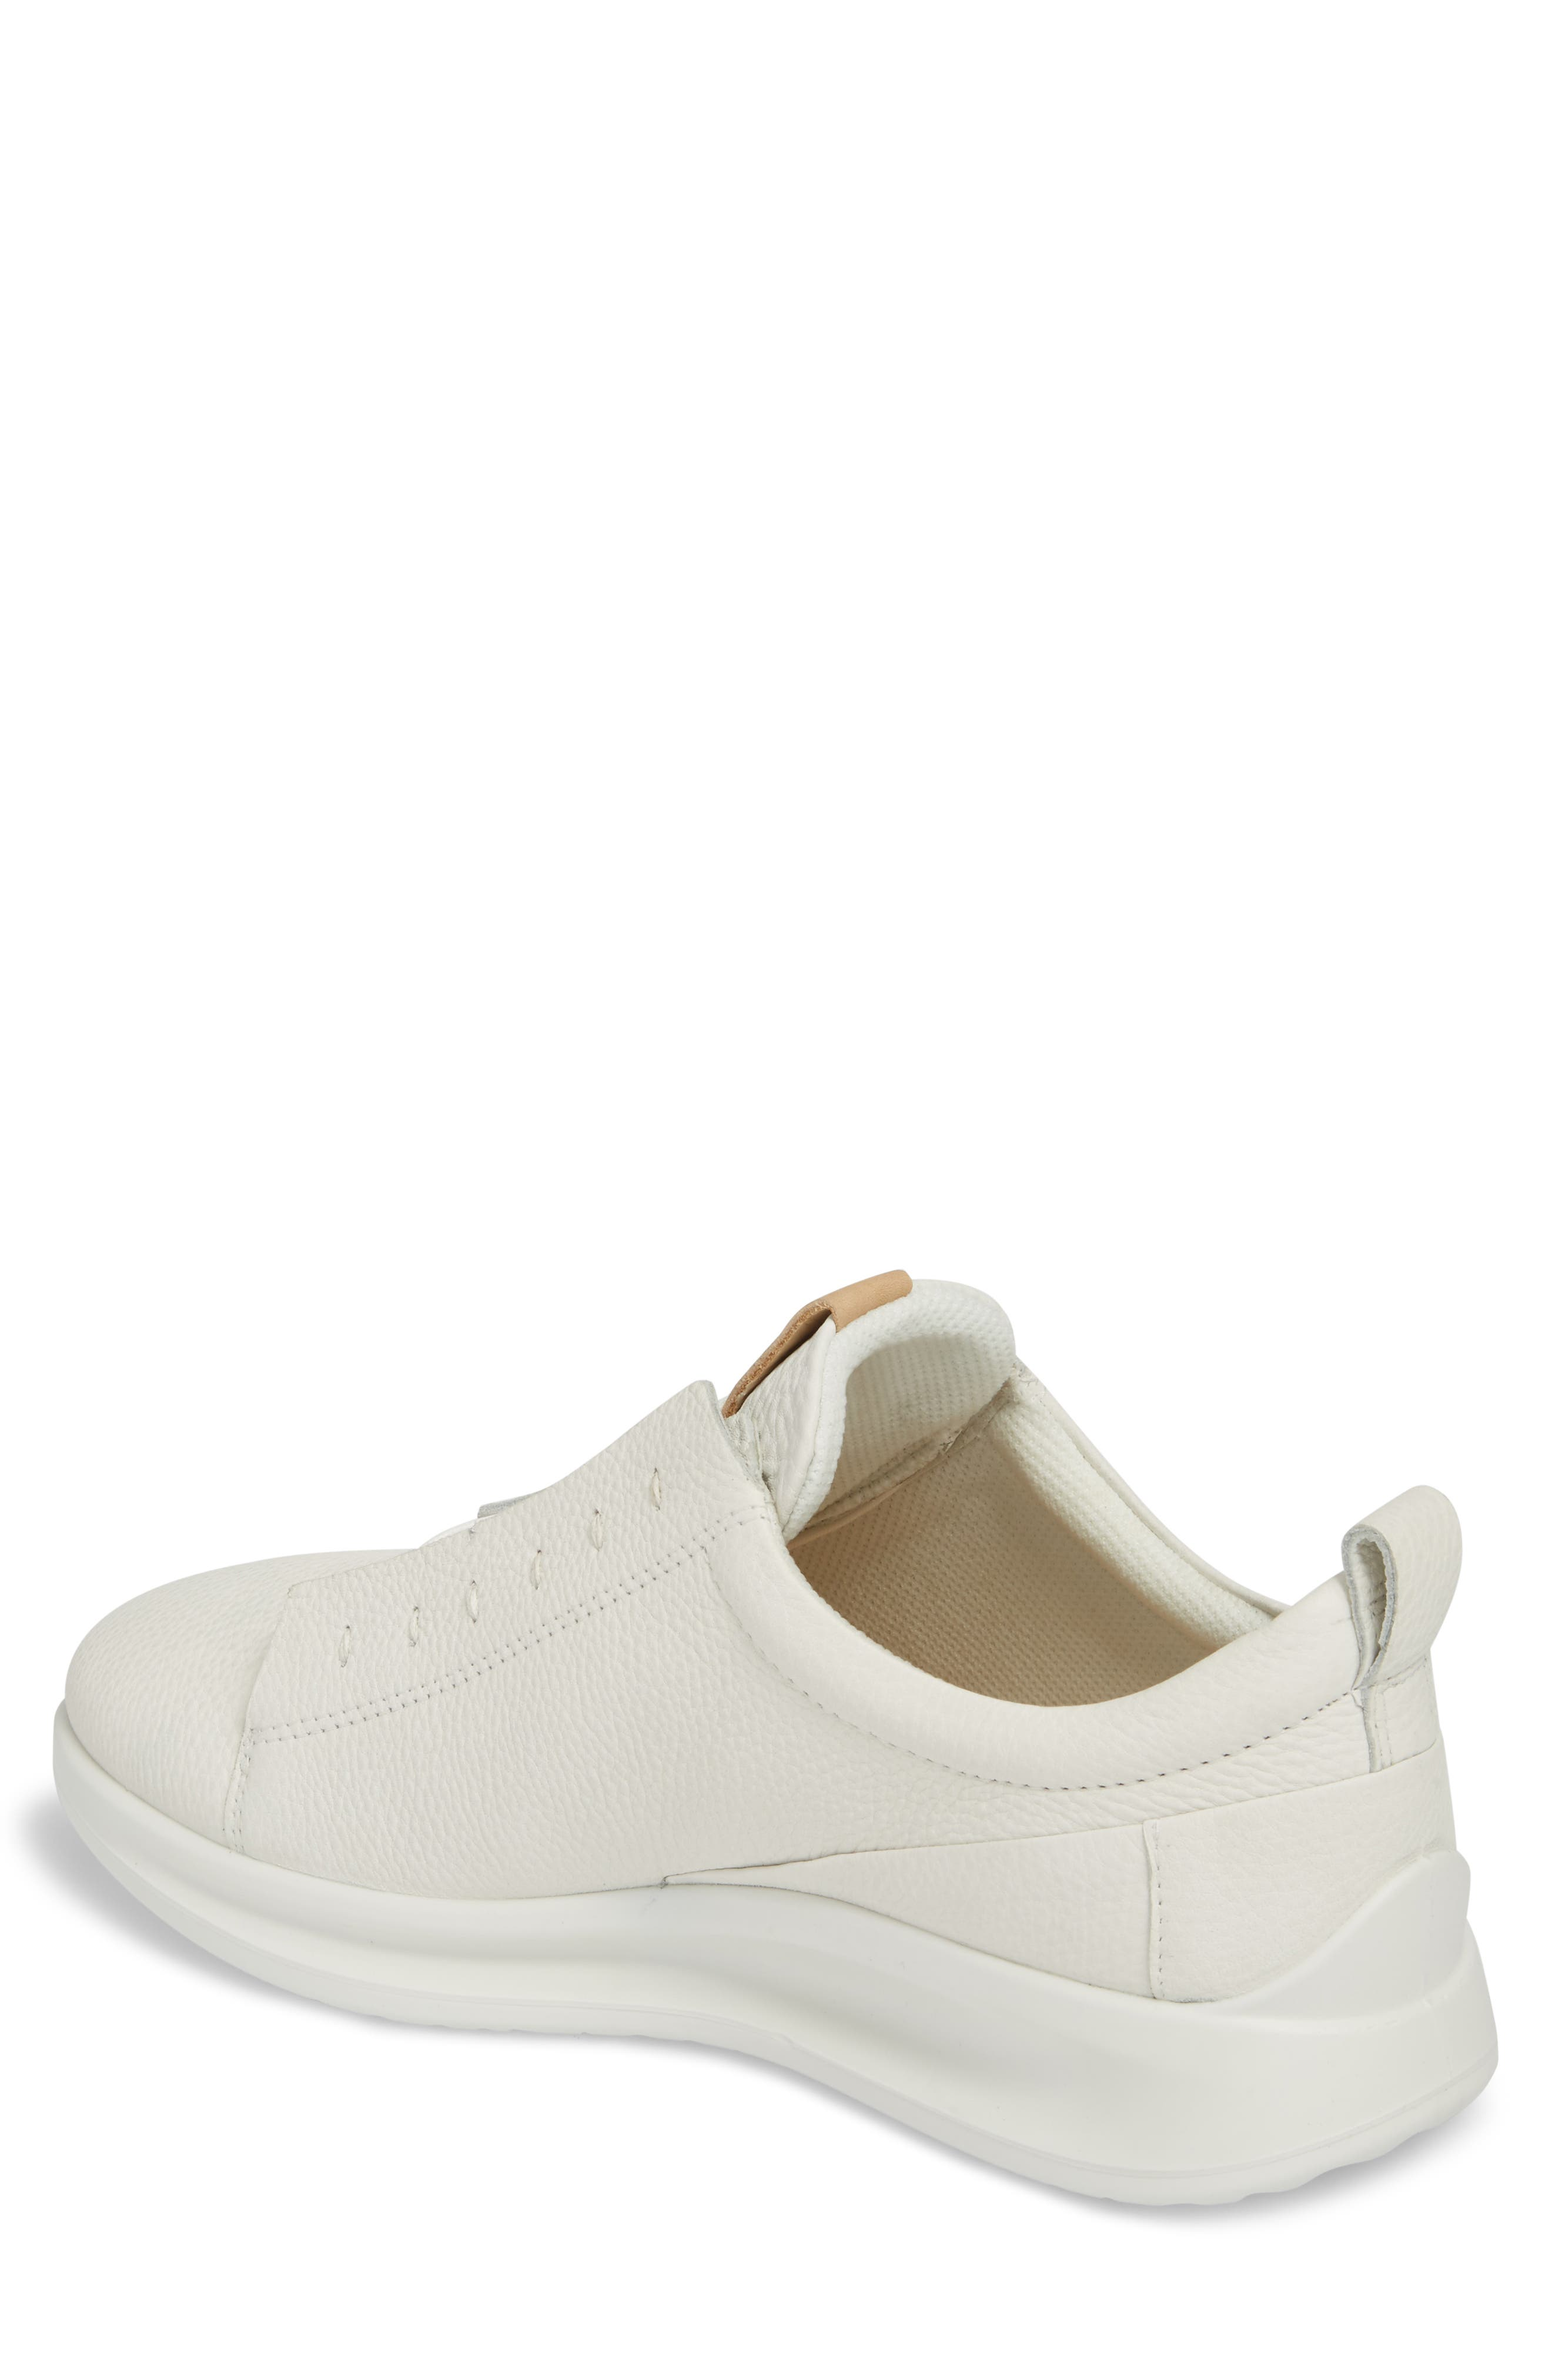 Aquet Low Top Sneaker,                             Alternate thumbnail 2, color,                             100